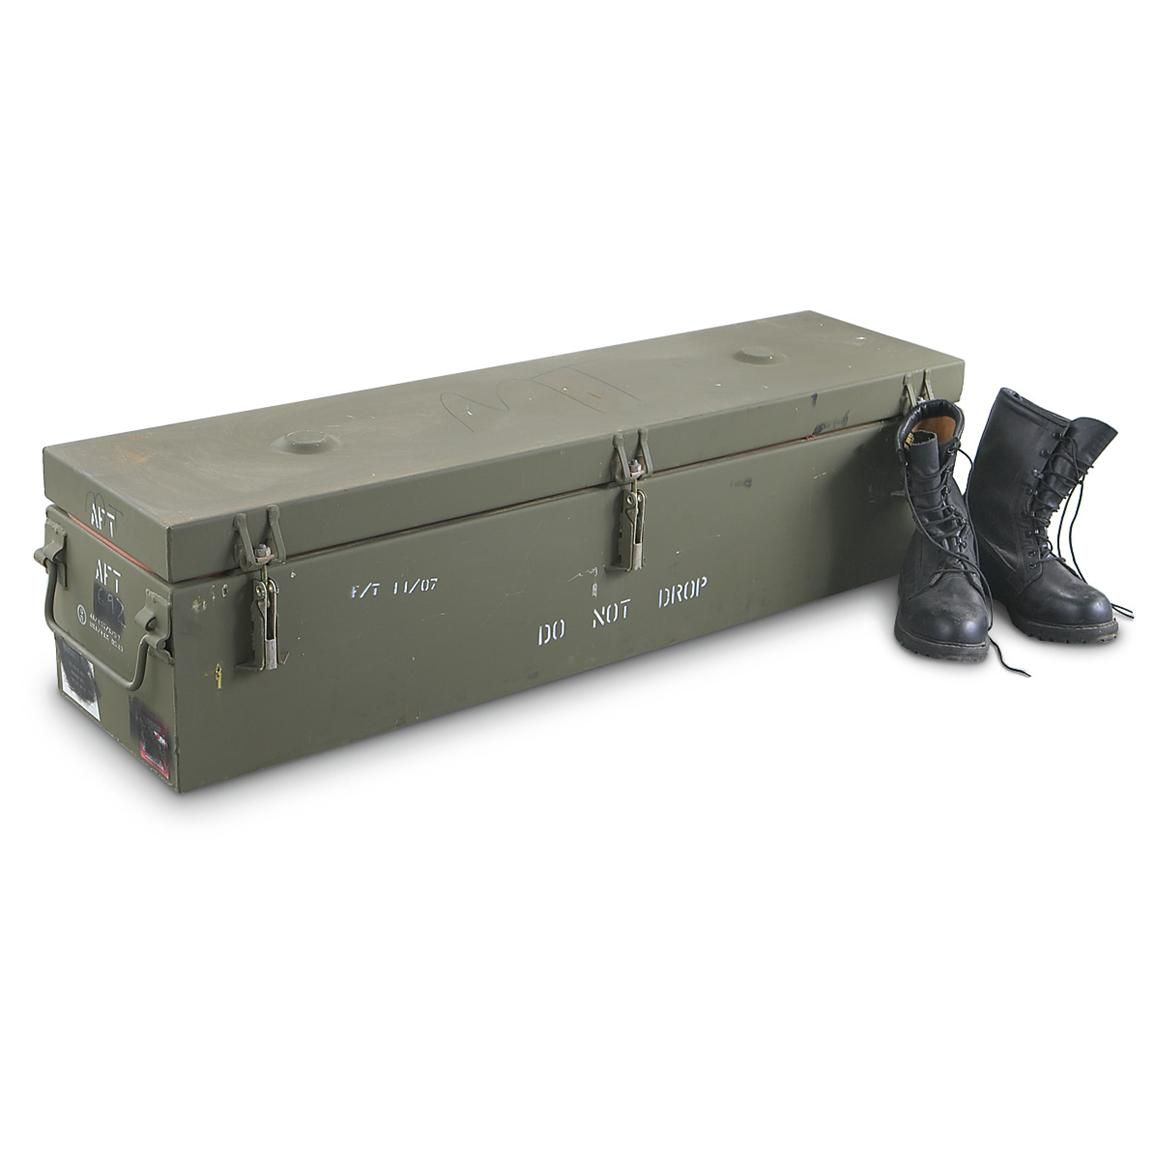 New U S Military Surplus Metal Storage Container 6 912 Cu In Capacity Rugged Air Water